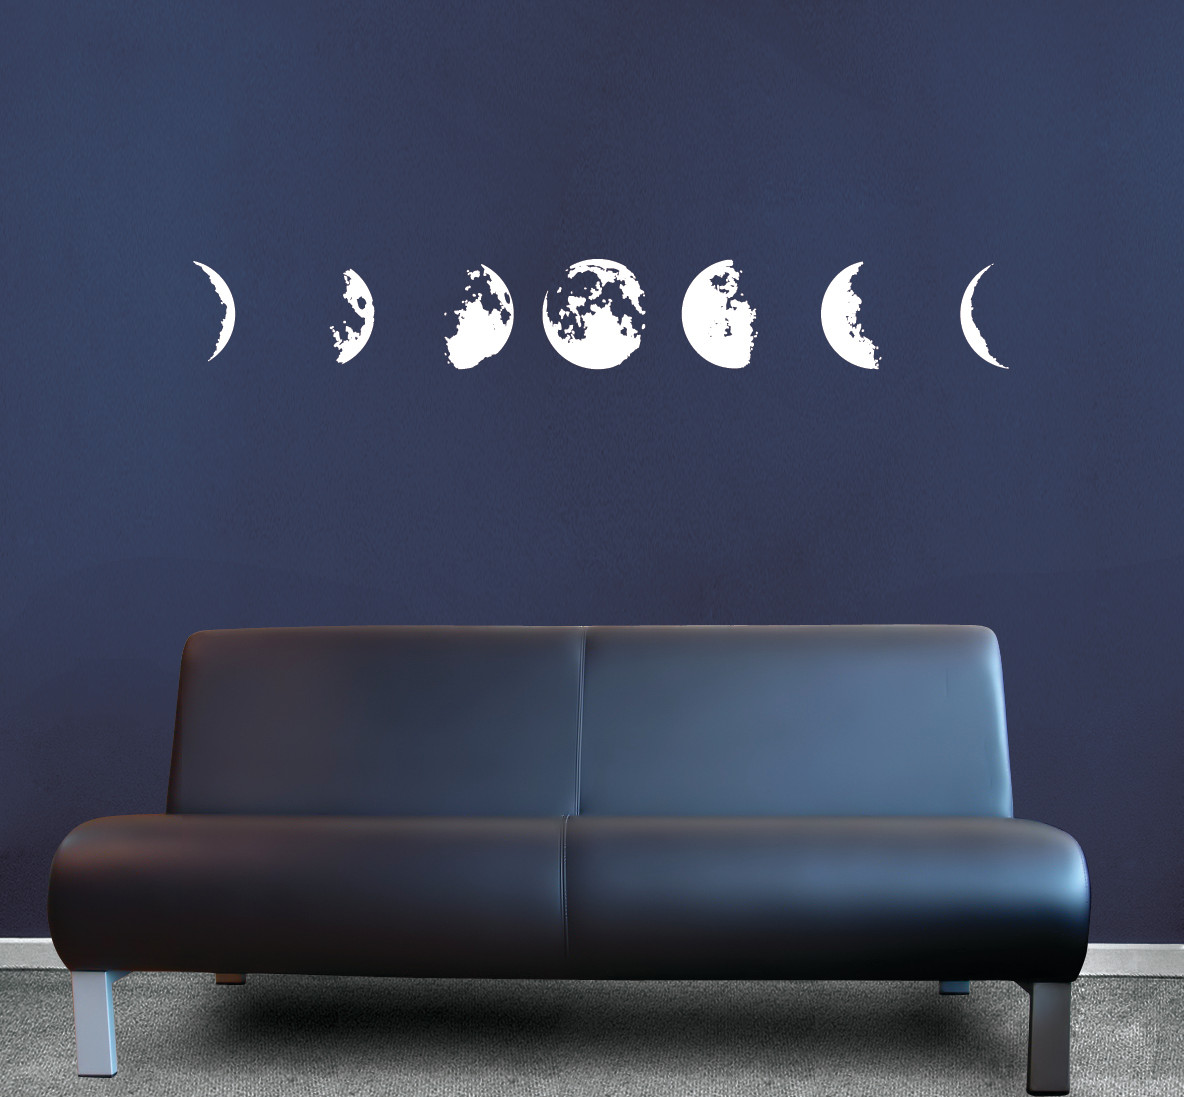 Phases Of The Moon Vinyl Decal Sticker Wall Art